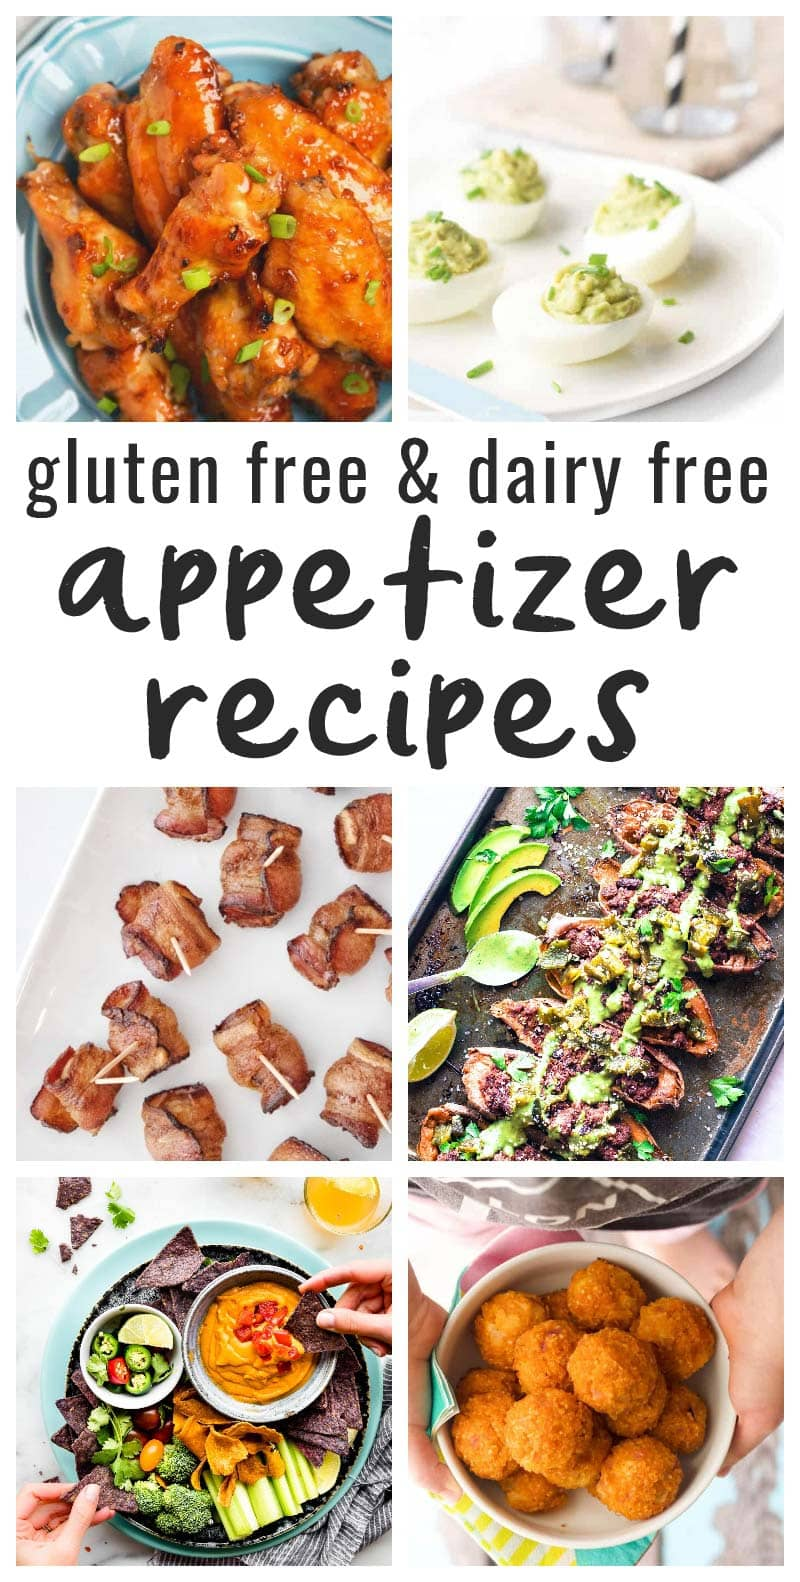 image collage of various allergy friendly appetizer recipes